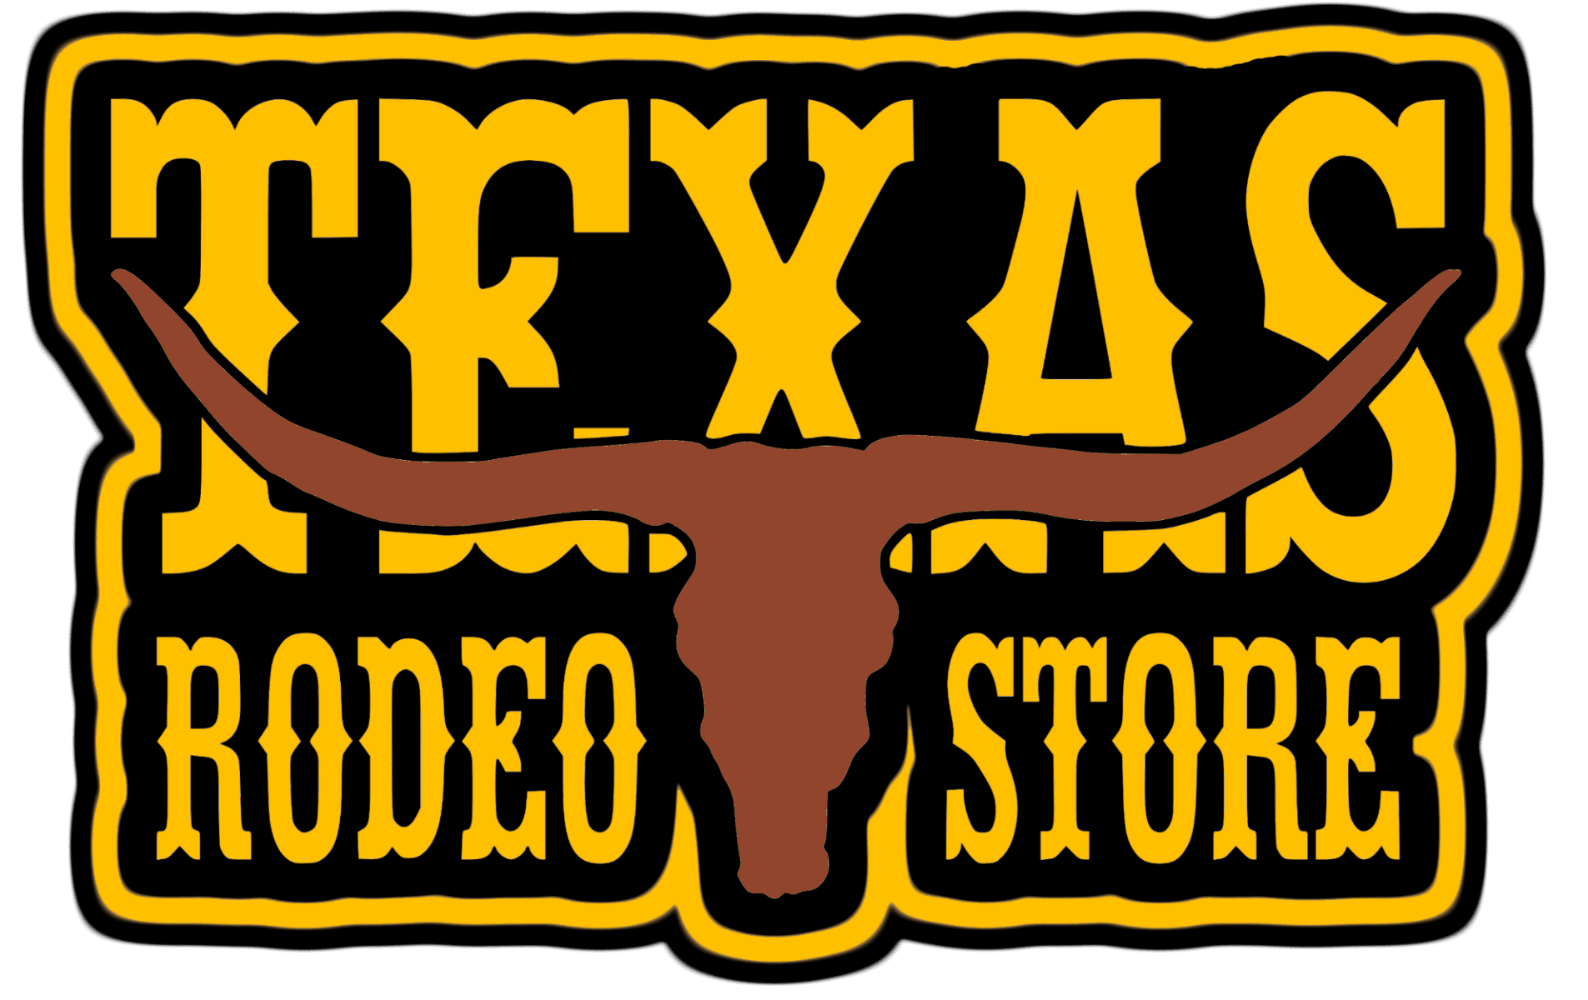 Texas Rodeo Store